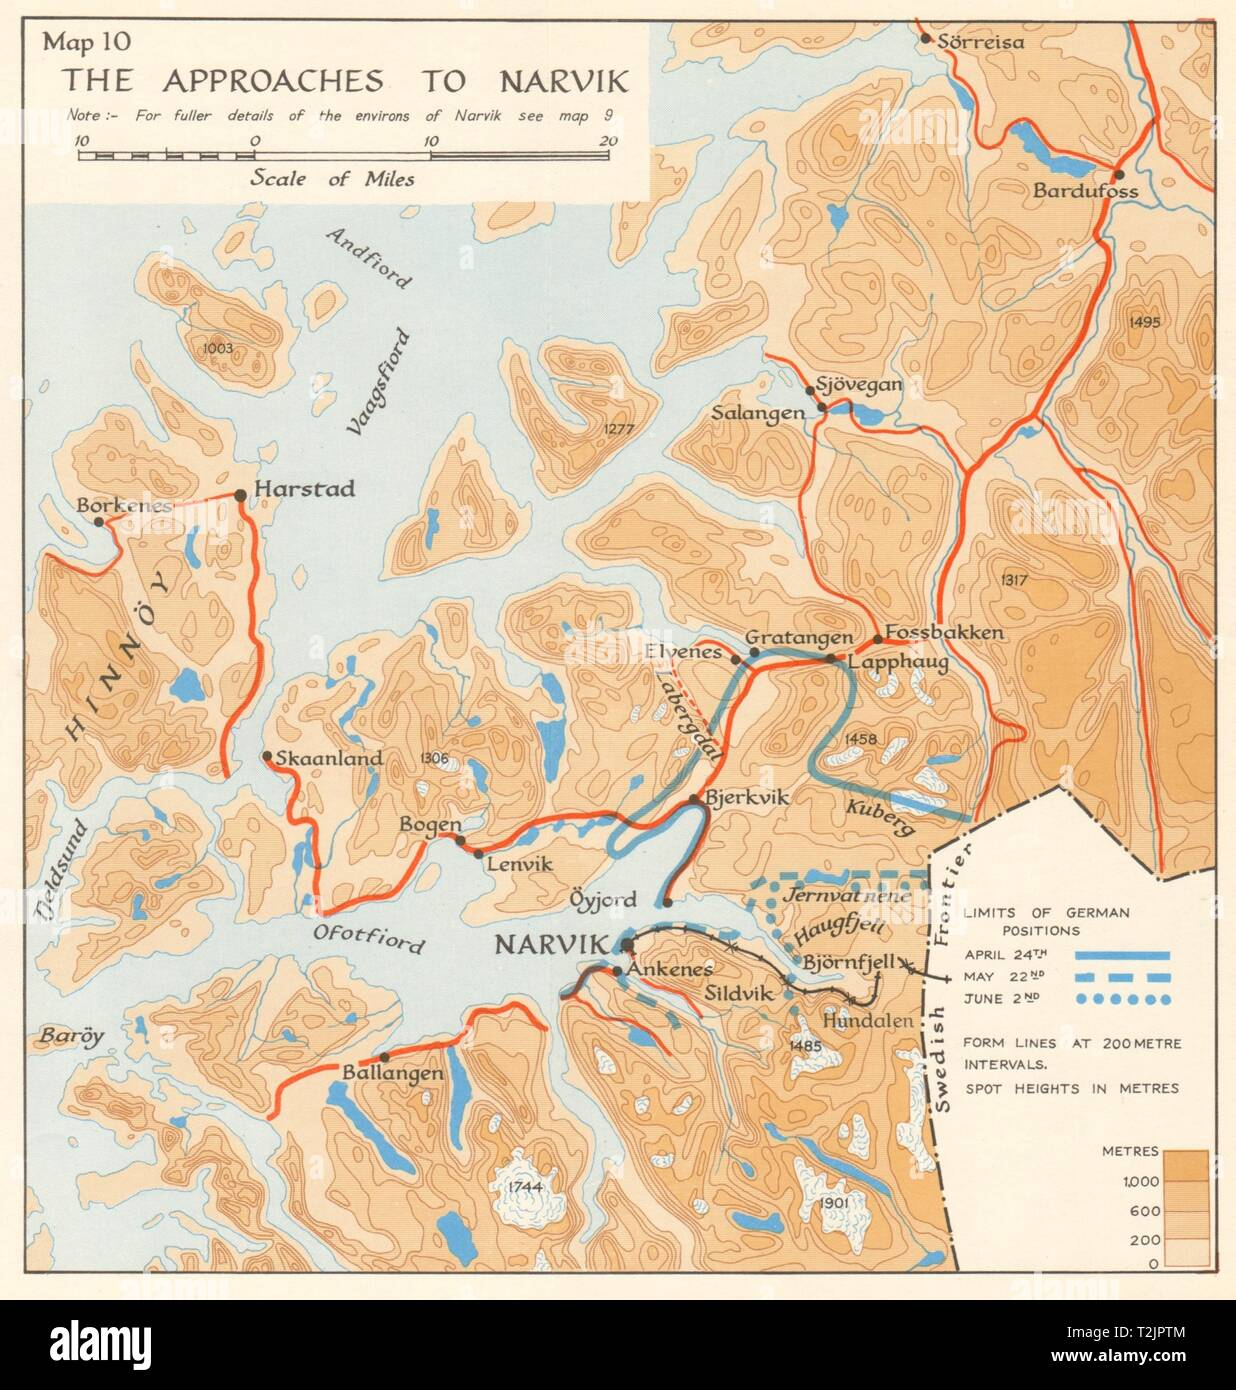 World War 2 Norway Campaign. Narvik approaches 1940. German ...